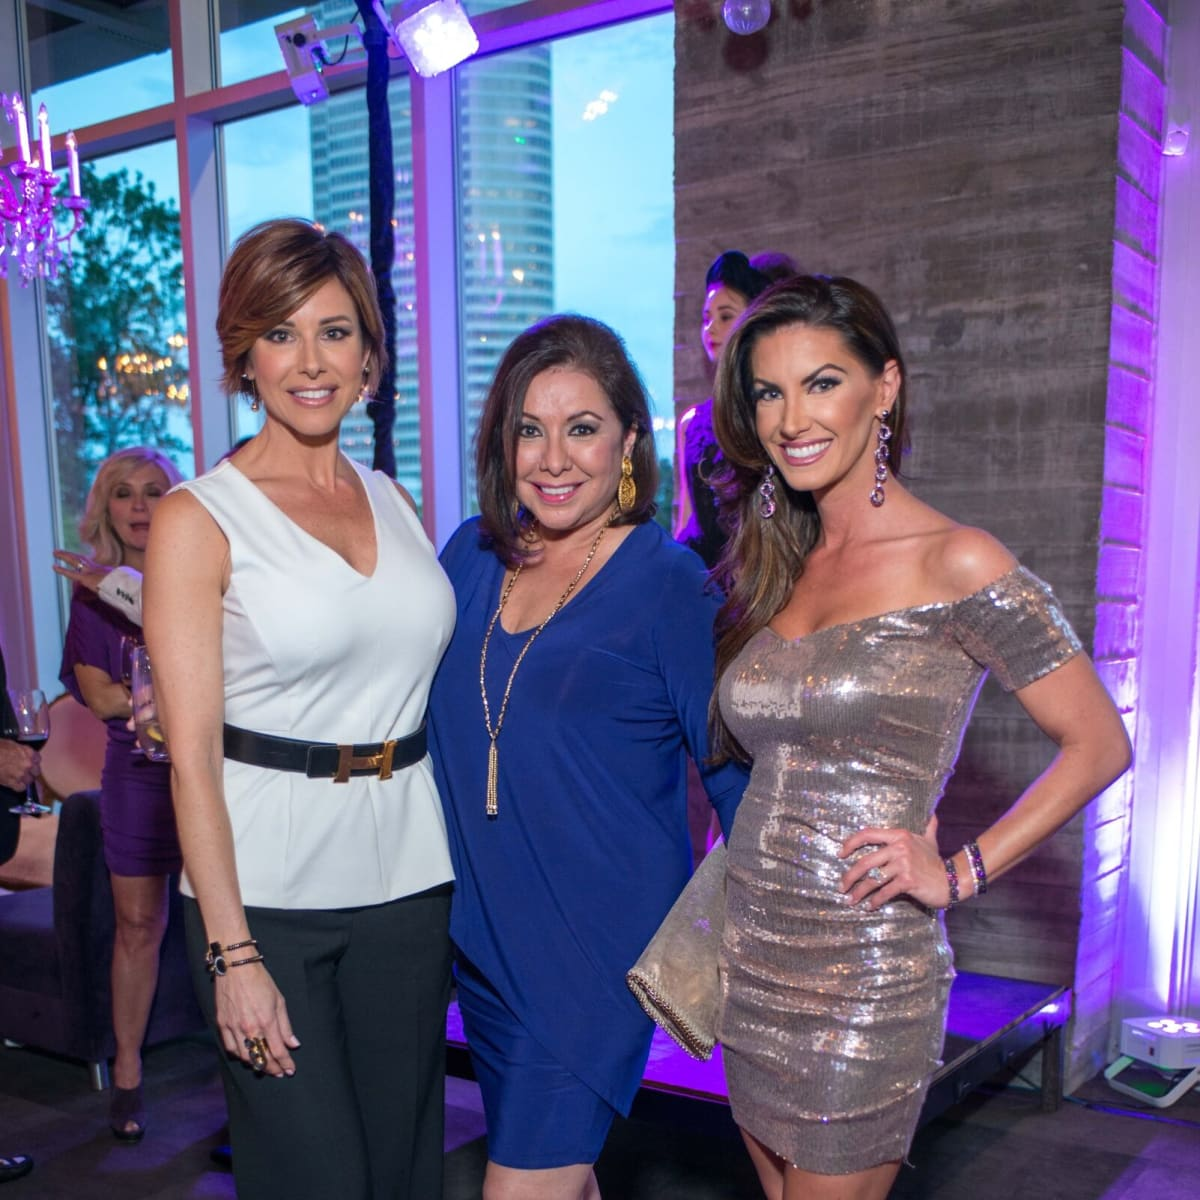 Purple party, Dominique Sachse Florescu, Debbie Festari, Nicole O'Brian Lassiter